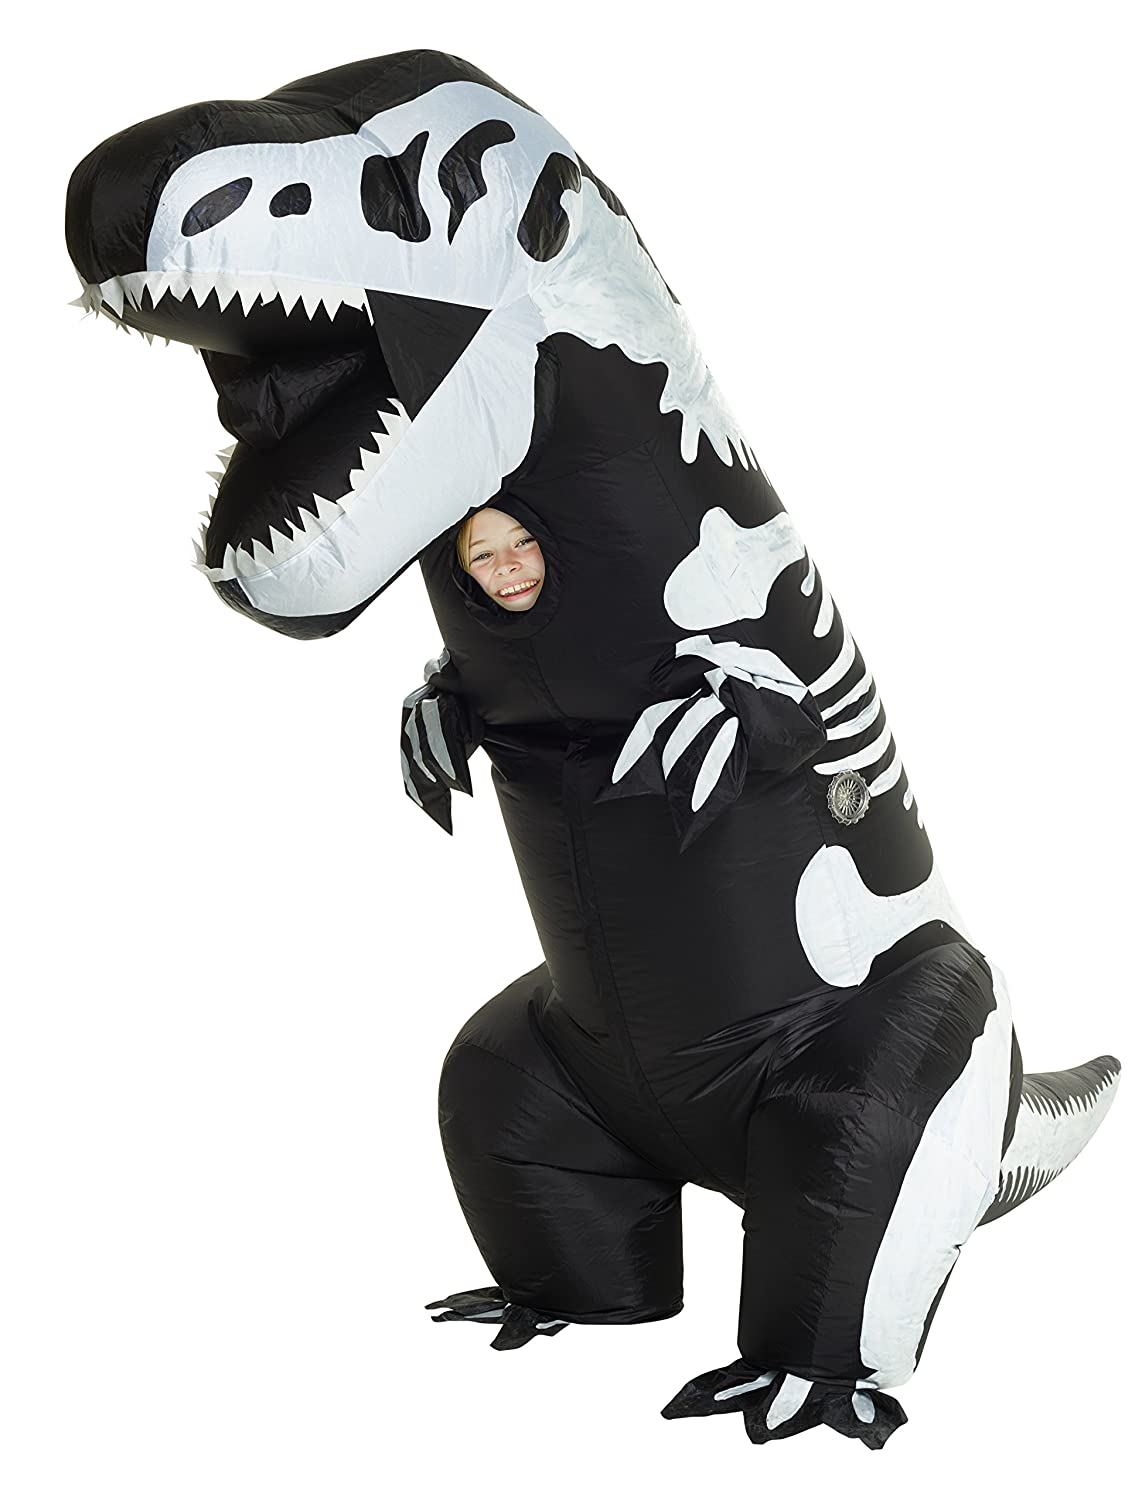 (Skeleton T-rex) - Morphsuits Giant Costume Skeleton One Inflatable Giant Kids Fancy dress Costume - One Size B06XQK4JD9, ヨウカイチシ:c8eadc4e --- alumnibooster.club